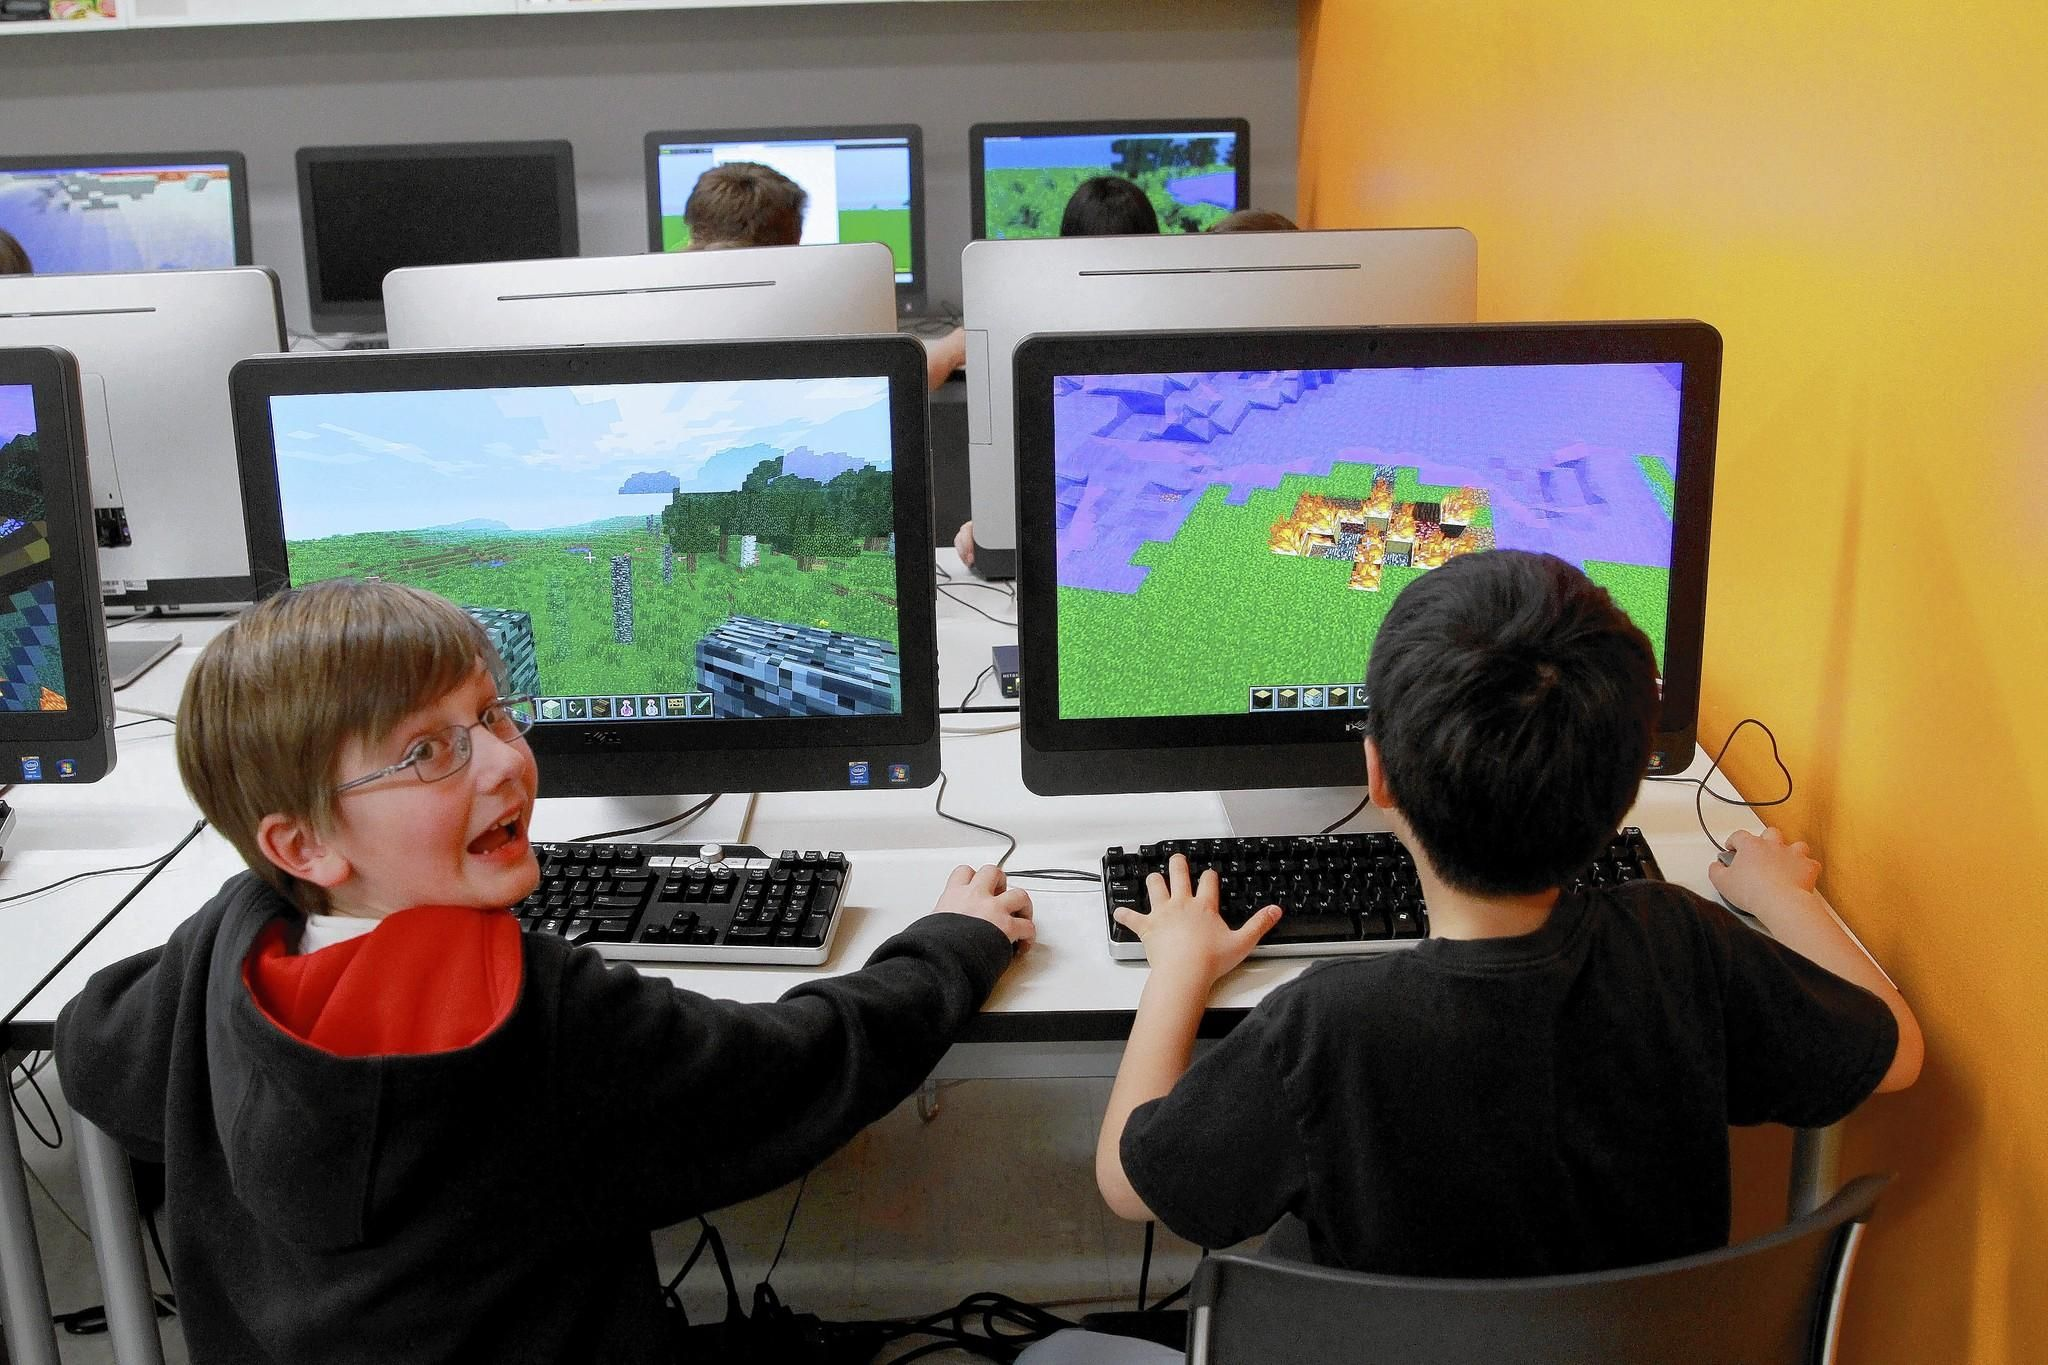 Video game 'Minecraft' finds a home in schools